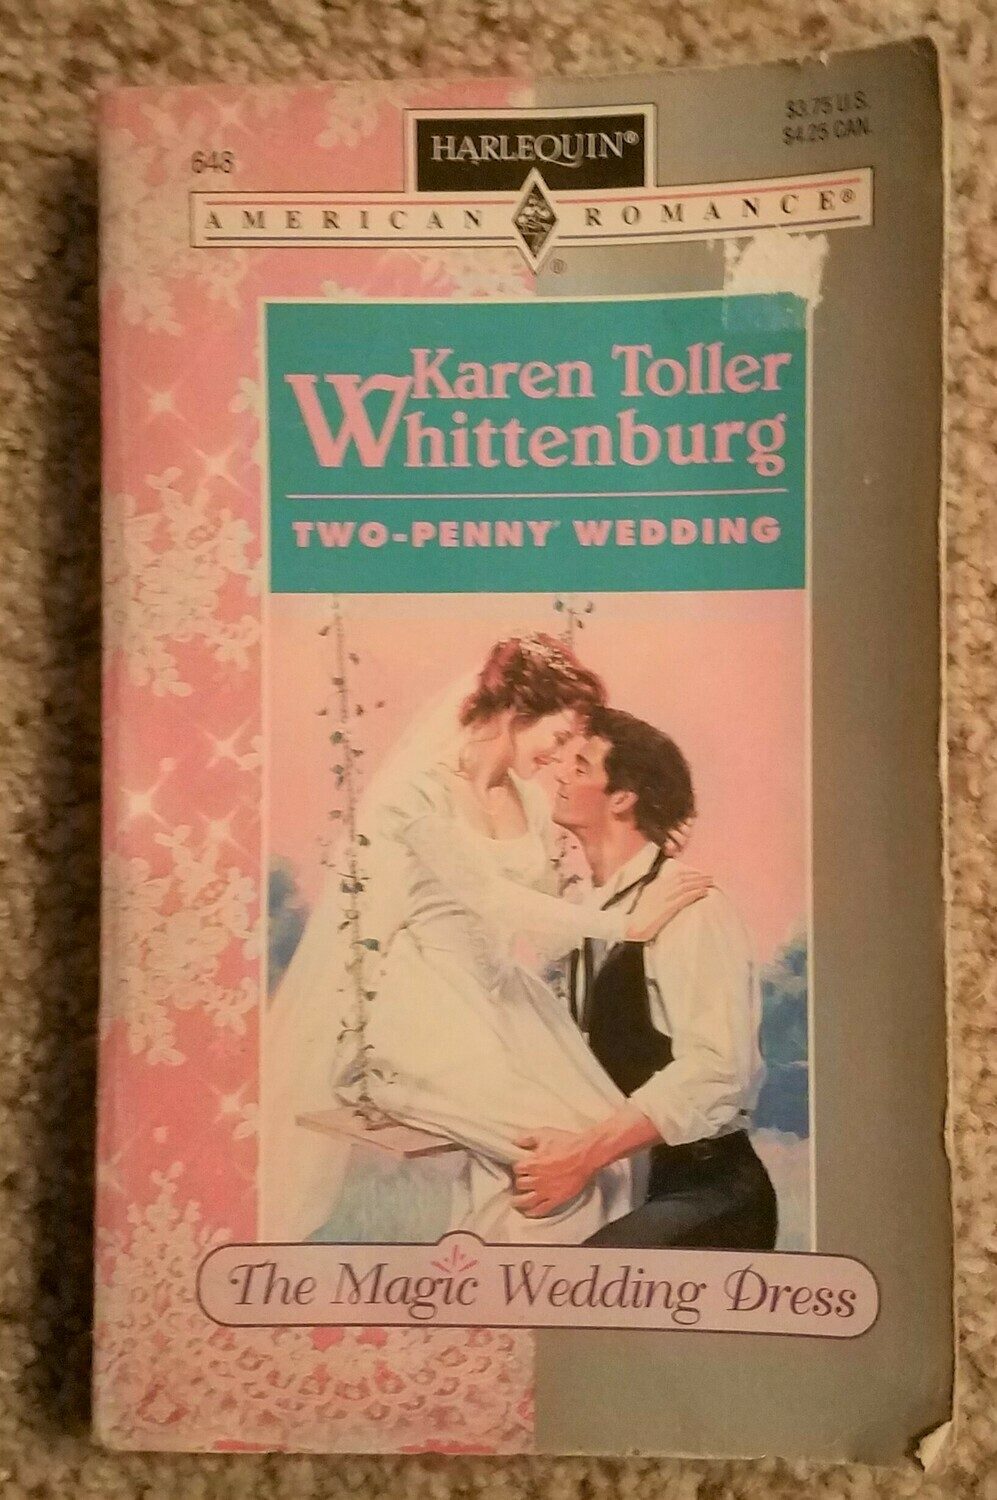 The Magic Wedding Dress: Two-Penny Wedding by Karen Toller Whittenburg